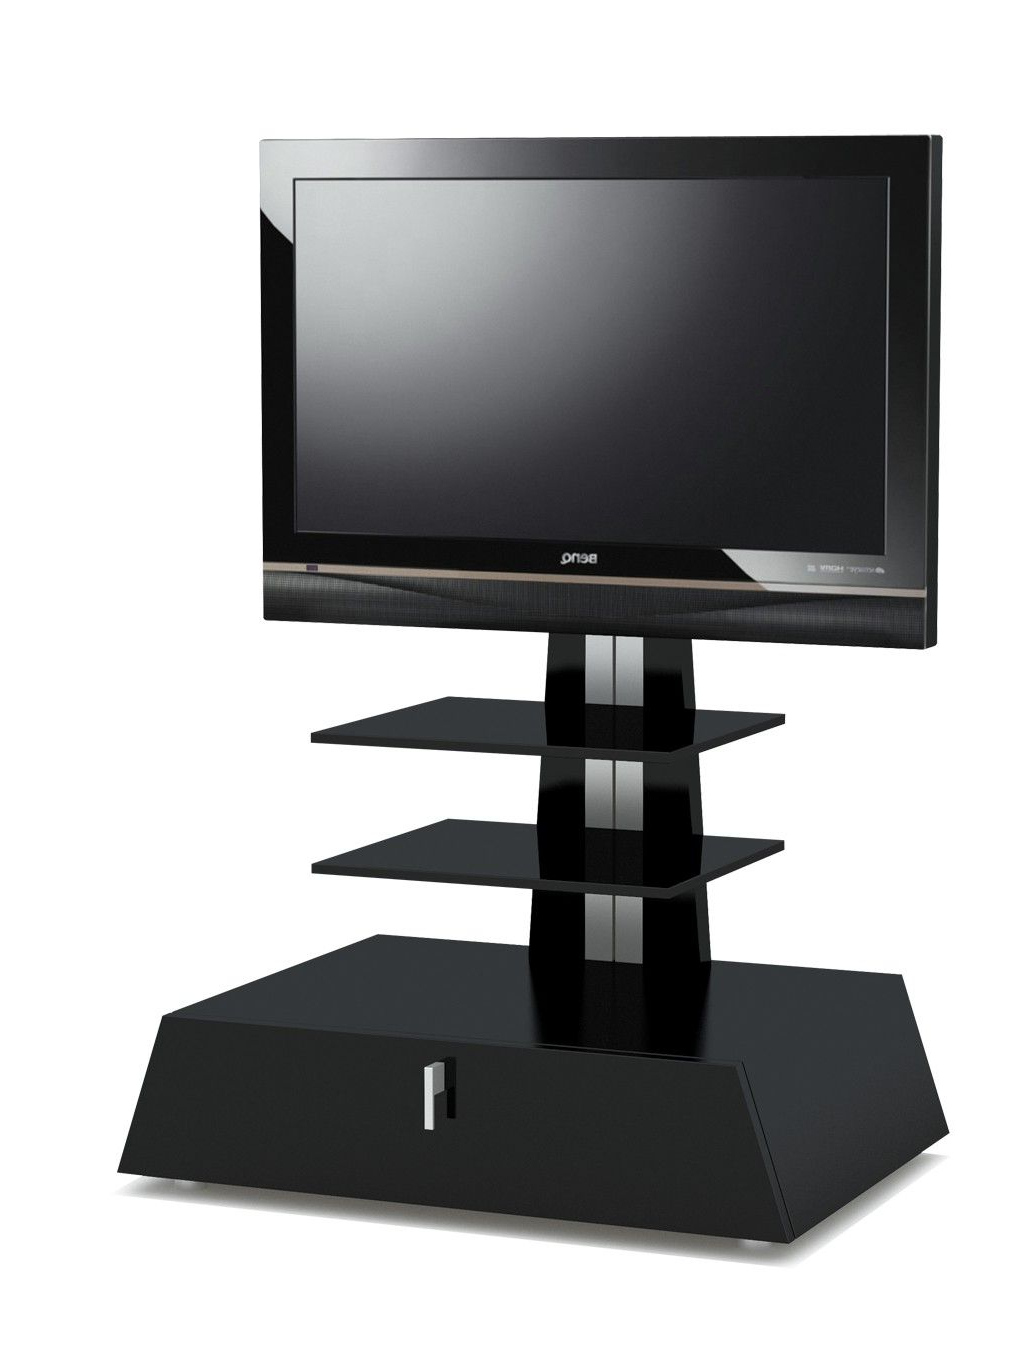 "Well Known Stil Stand Gloss Black Cantilever Tv Stand Up To 32"" Stuk 4060b Within Stil Tv Stands (View 9 of 20)"